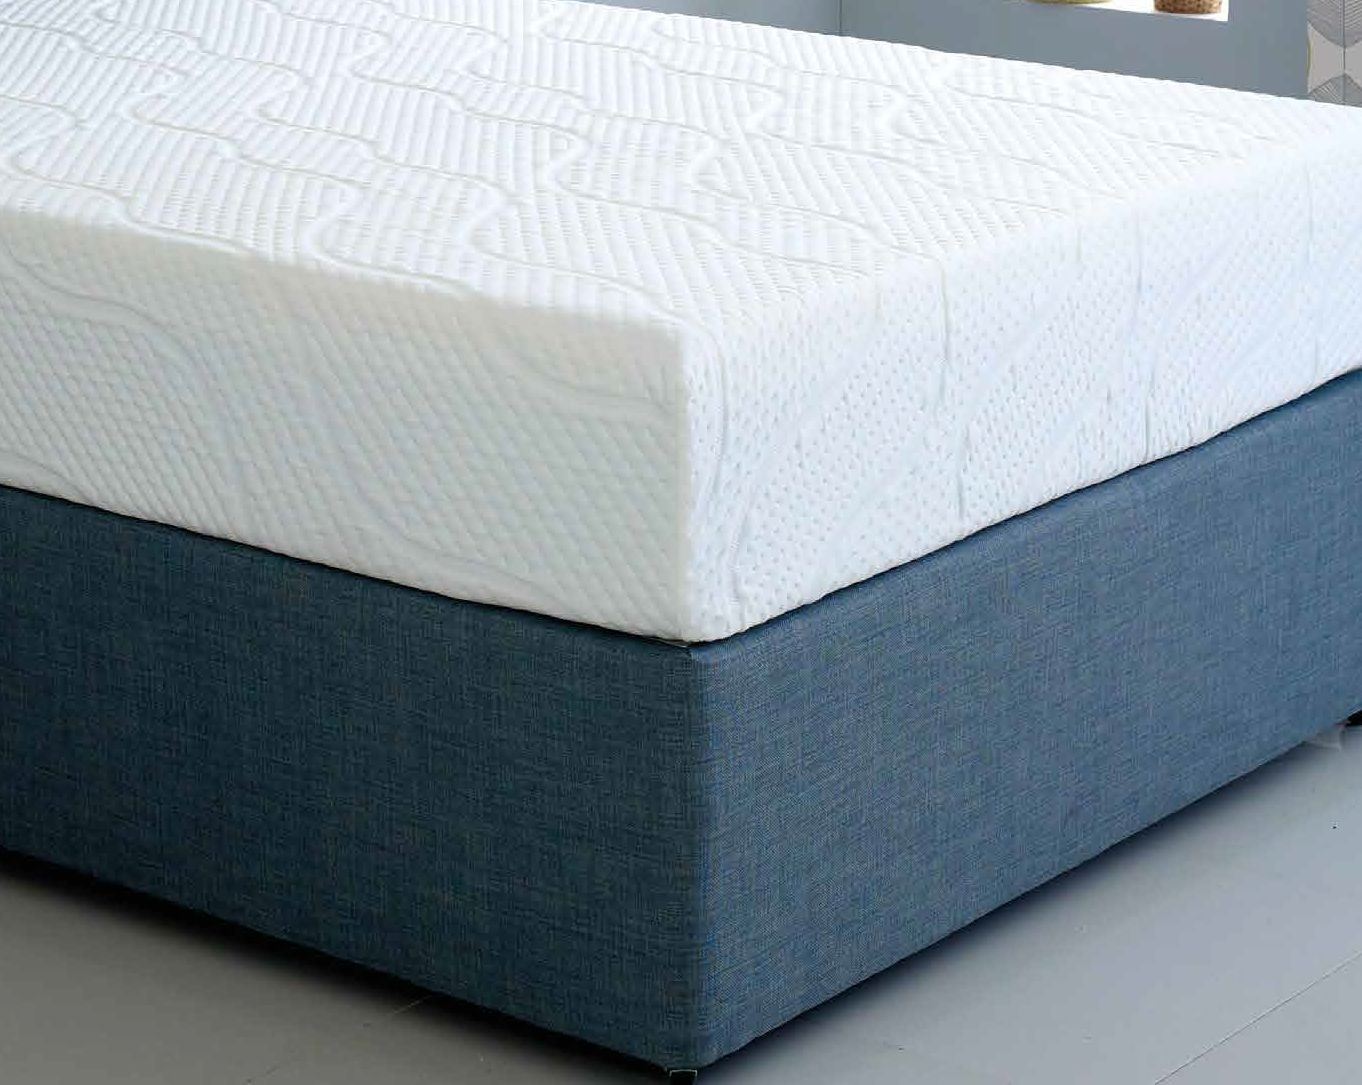 Hybrid Cool Blue 17.5cm Reflex Memory Foam Mattress